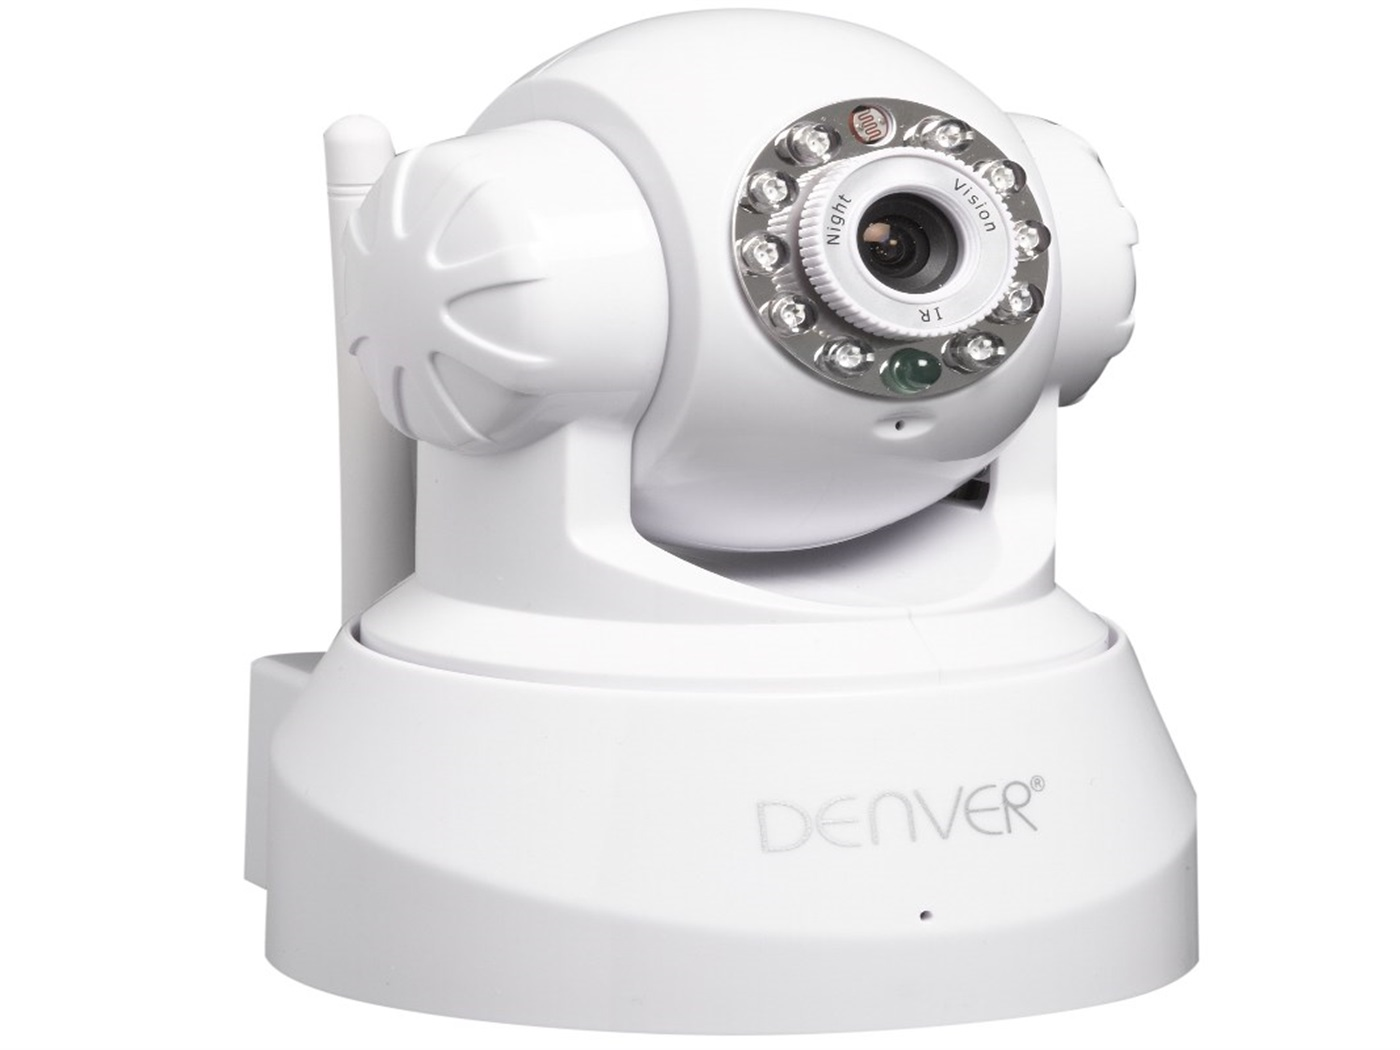 DENVER DIGITALNA IP KAMERA IPC-330